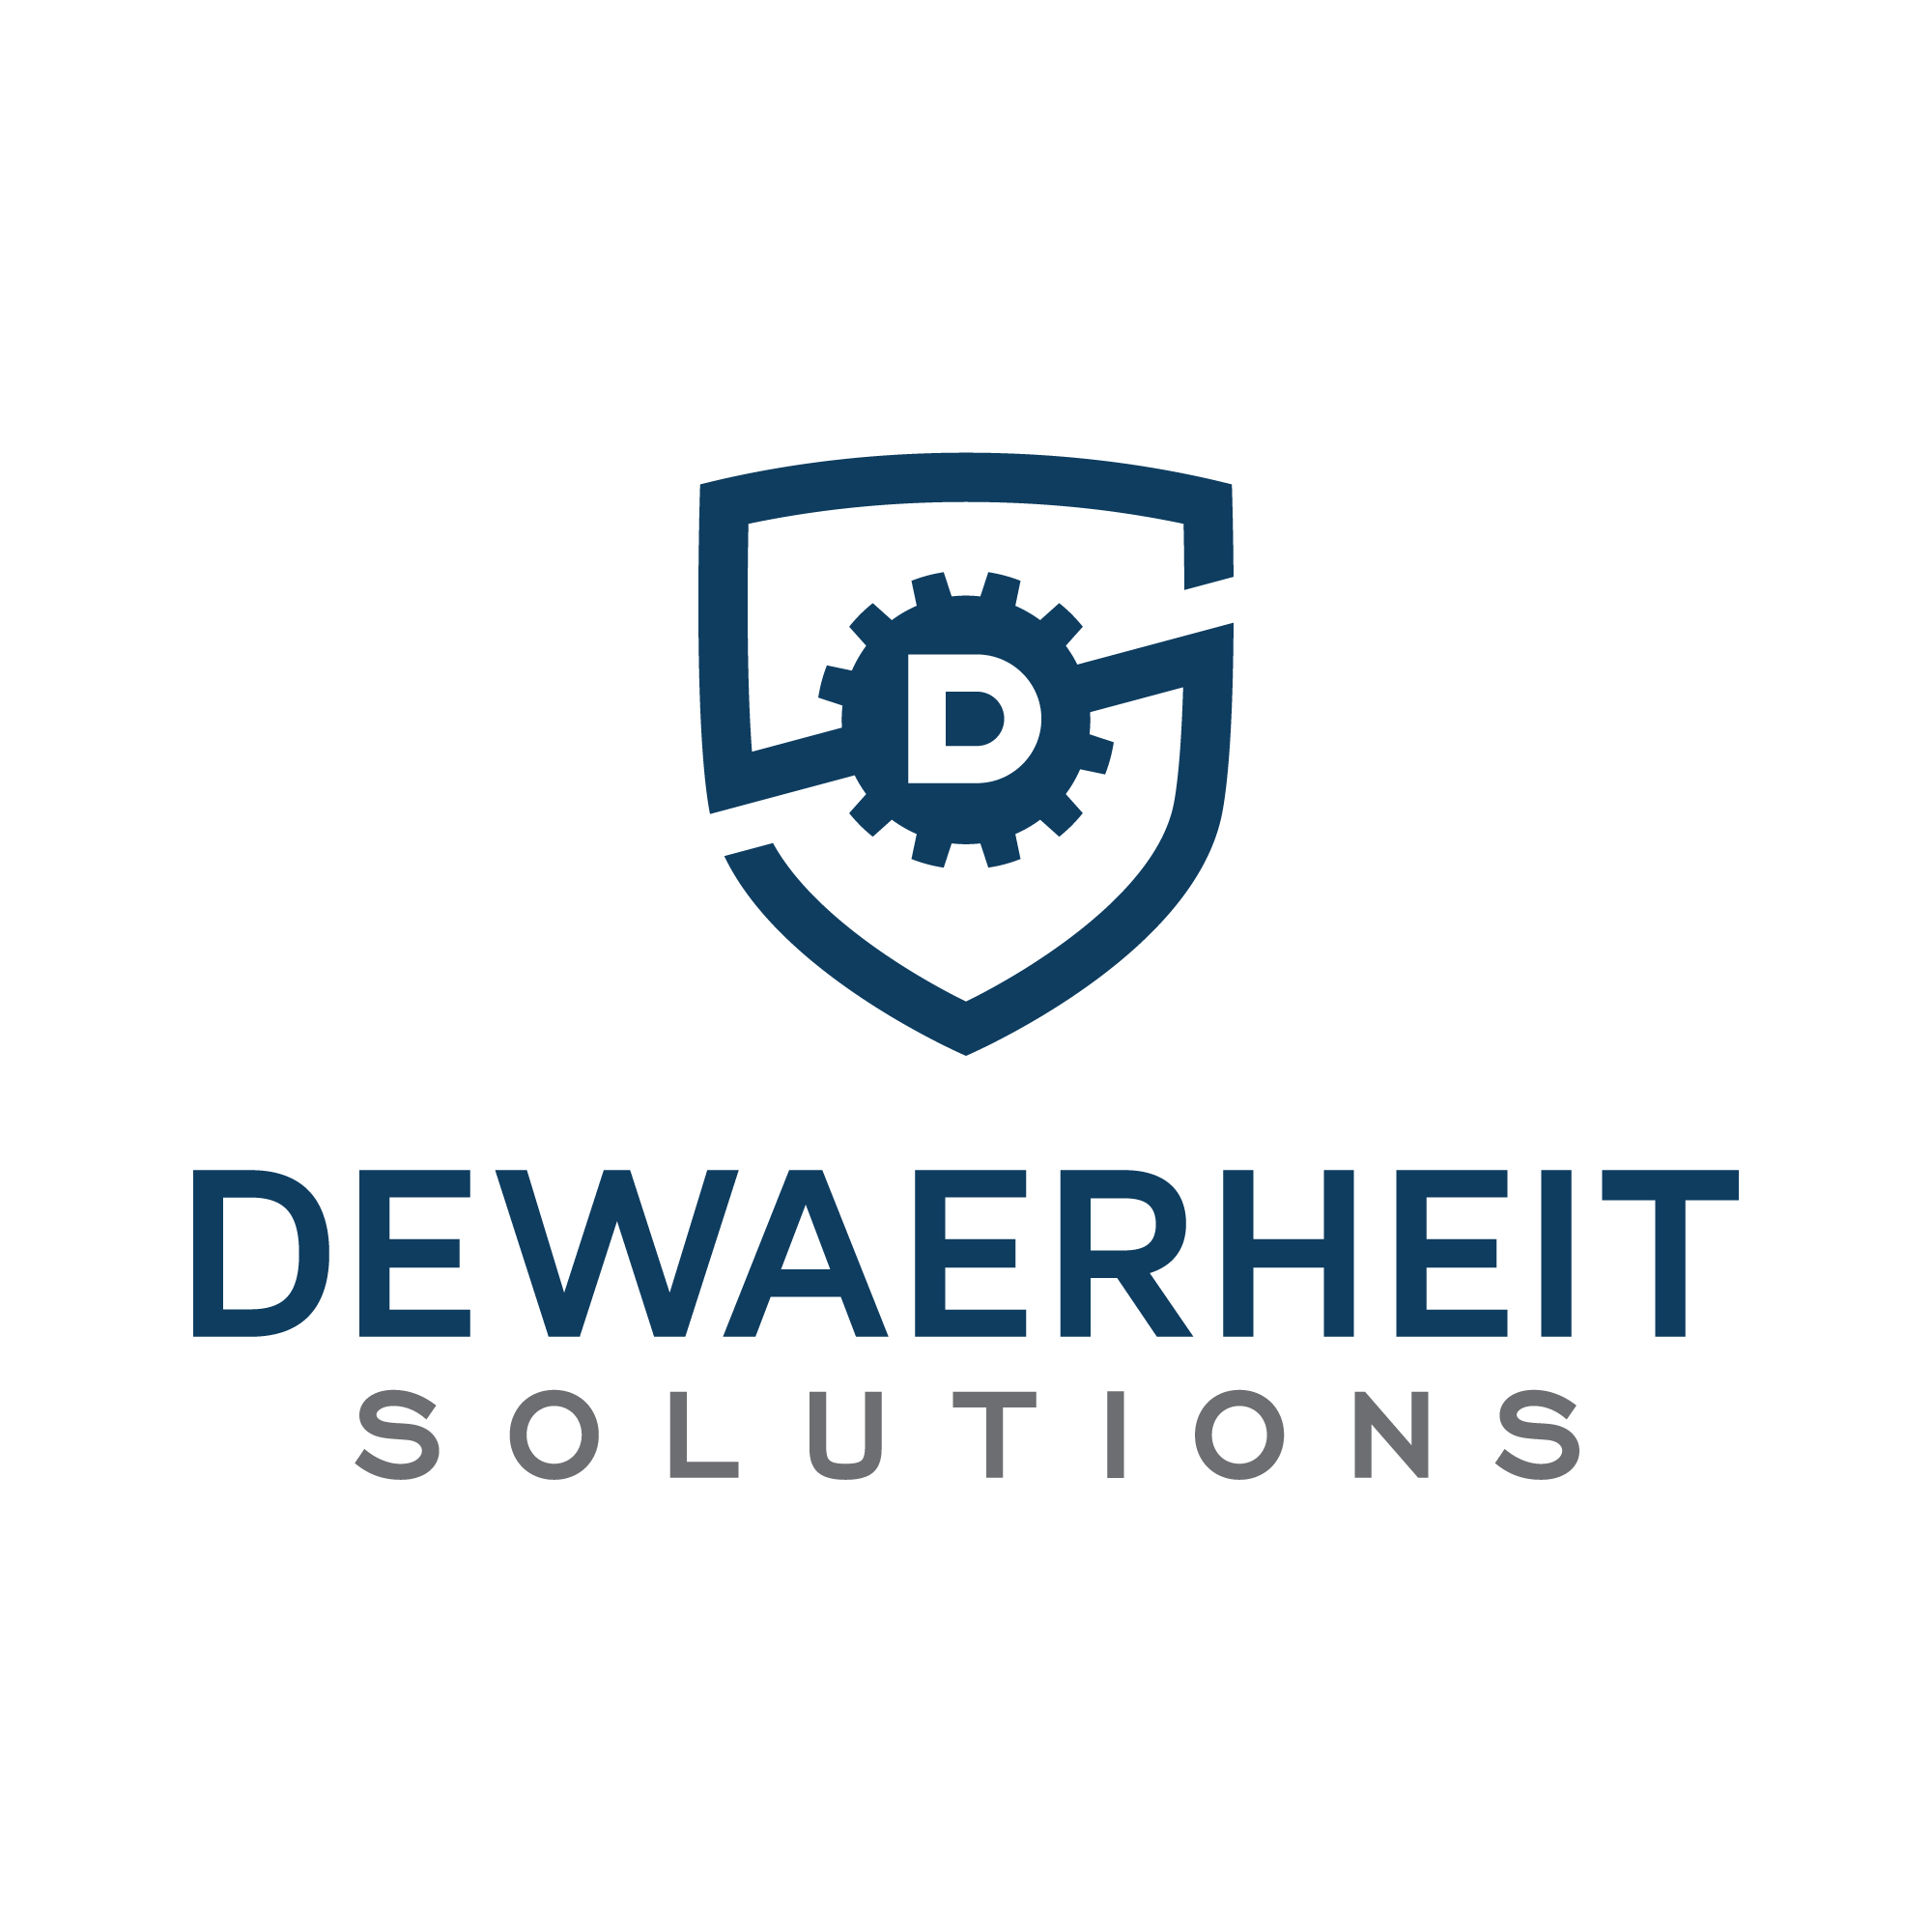 Logo Dewaerheit Solutions